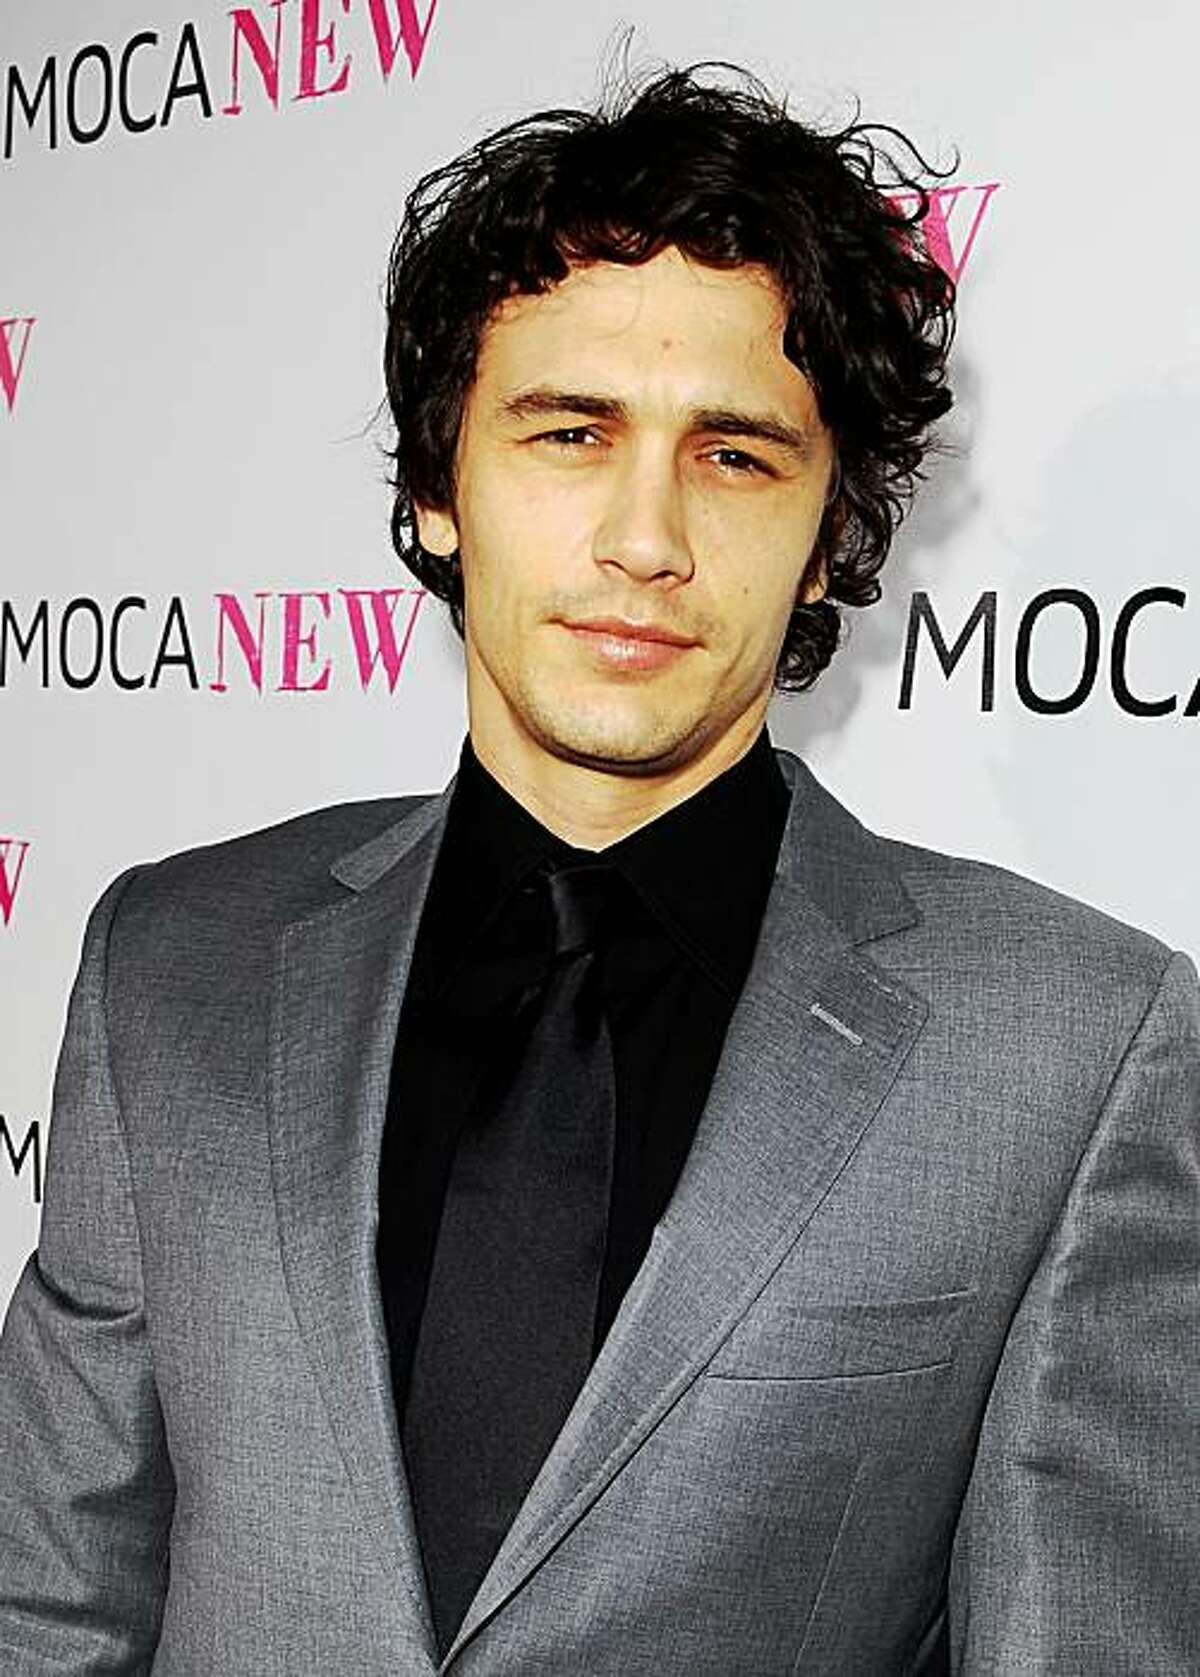 LOS ANGELES, CA - NOVEMBER 14: Actor James Franco arrives at the MOCA NEW 30th anniversary gala held at MOCA on November 14, 2009 in Los Angeles, California. (Photo by Michael Caulfield/Getty Images for MOCA)